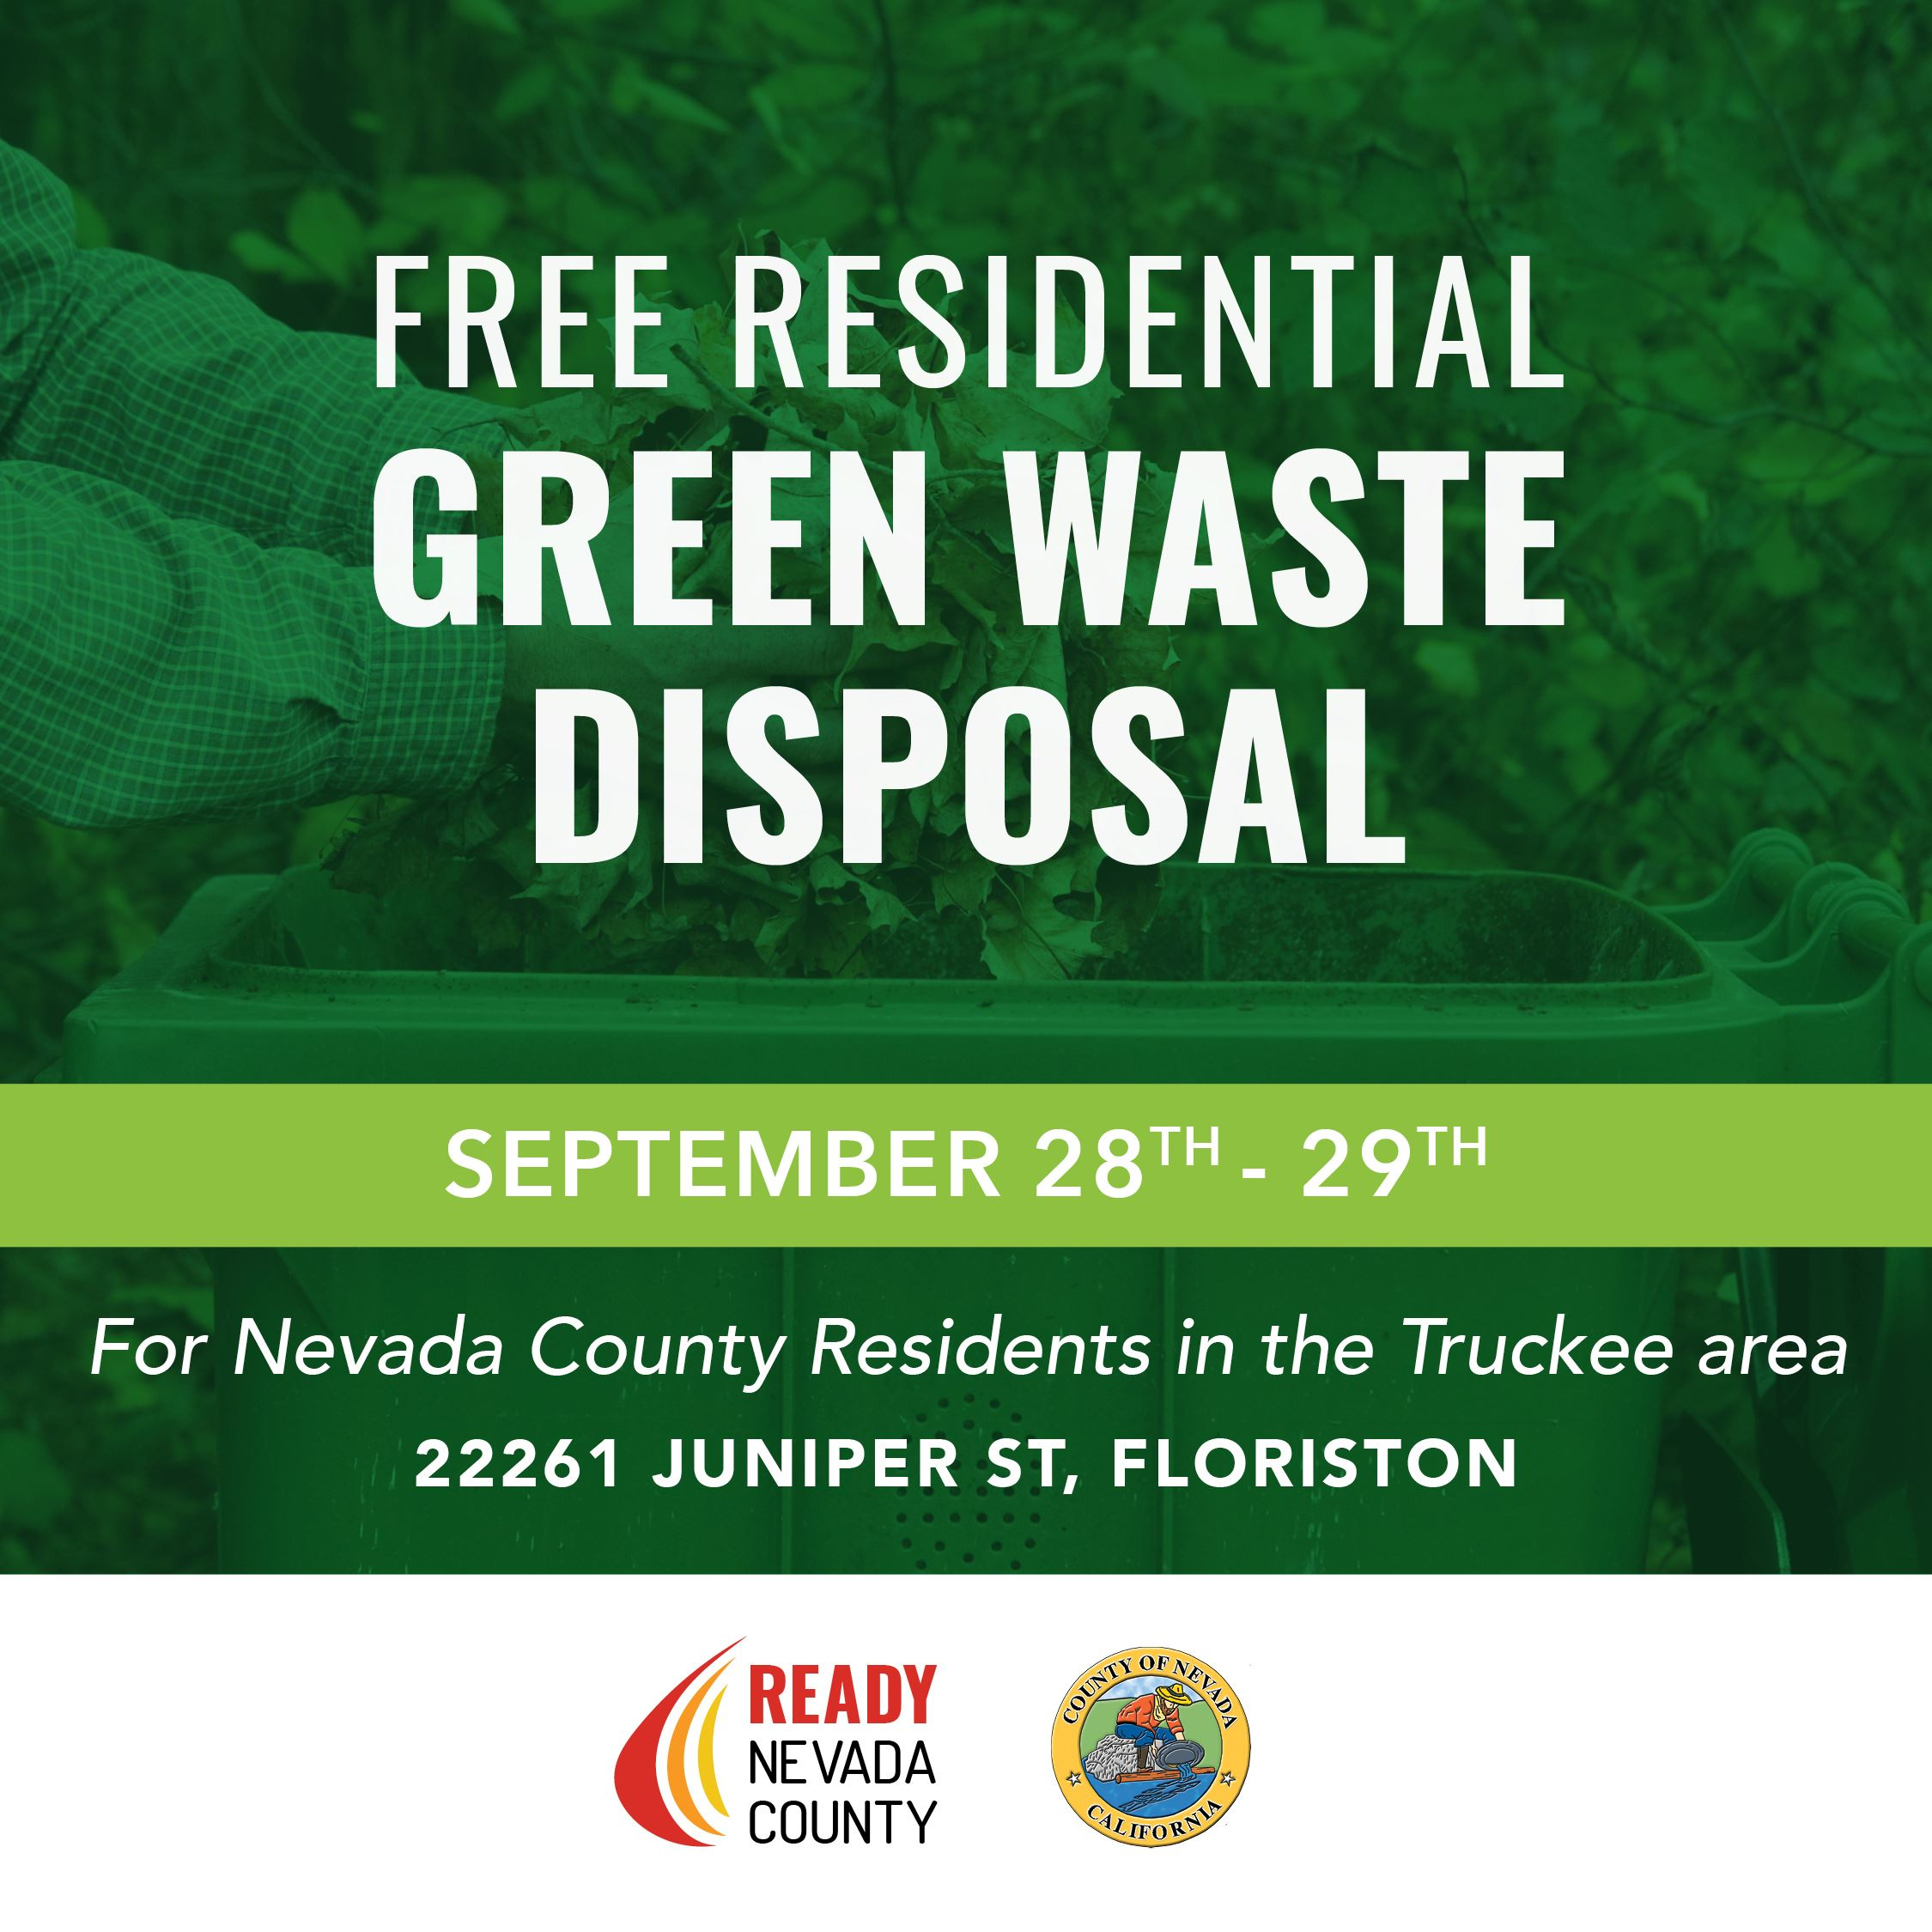 Truckee_GreenWaste_Sq2